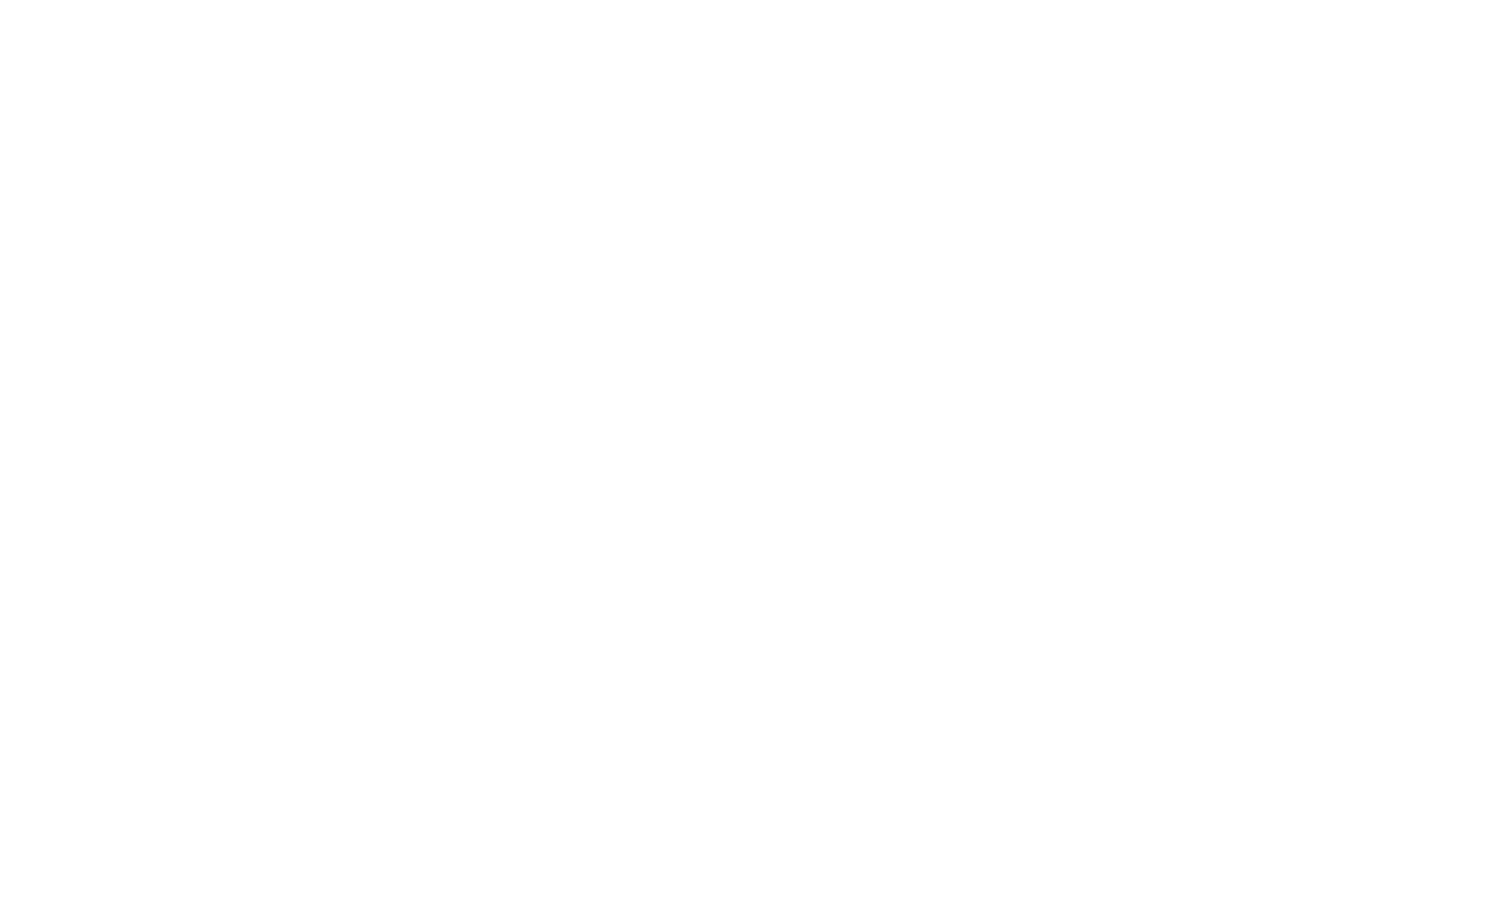 NYC Graphic Design Studio - Logos, Branding, Web Design - Empirical Designs